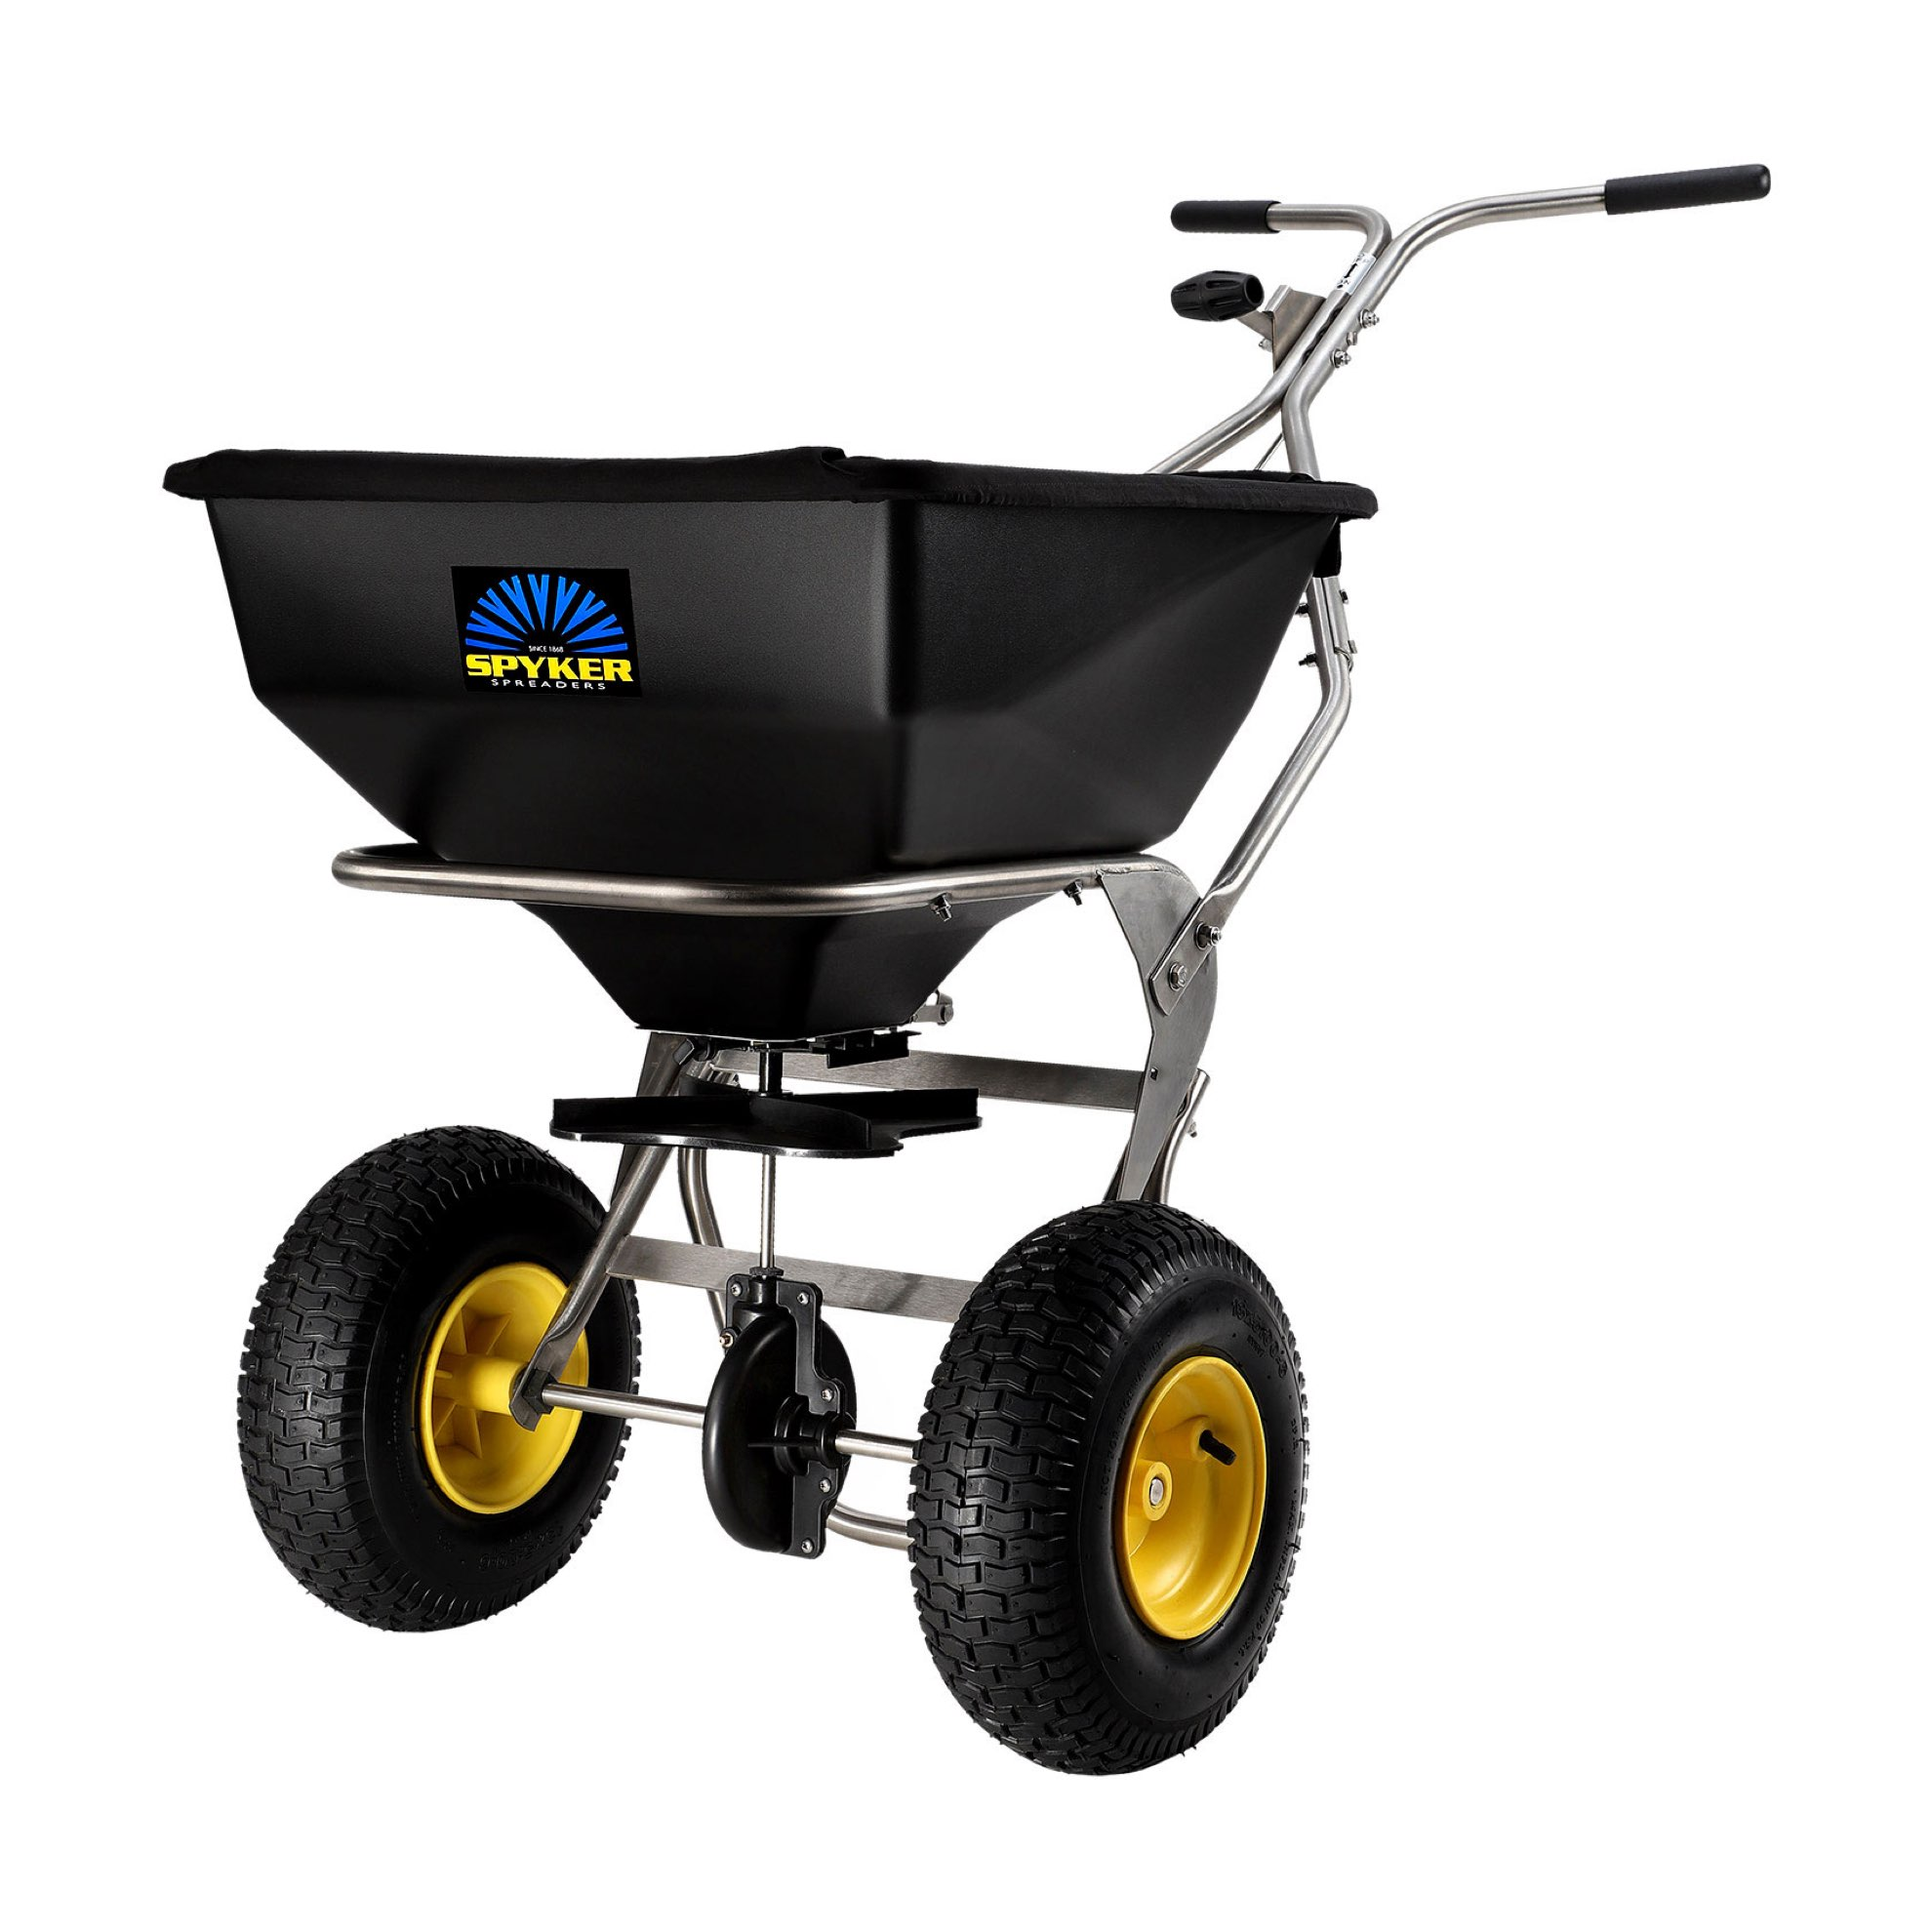 Spyker SPY80-1S 80lb Large Capacity Sport and Lawn Spreader